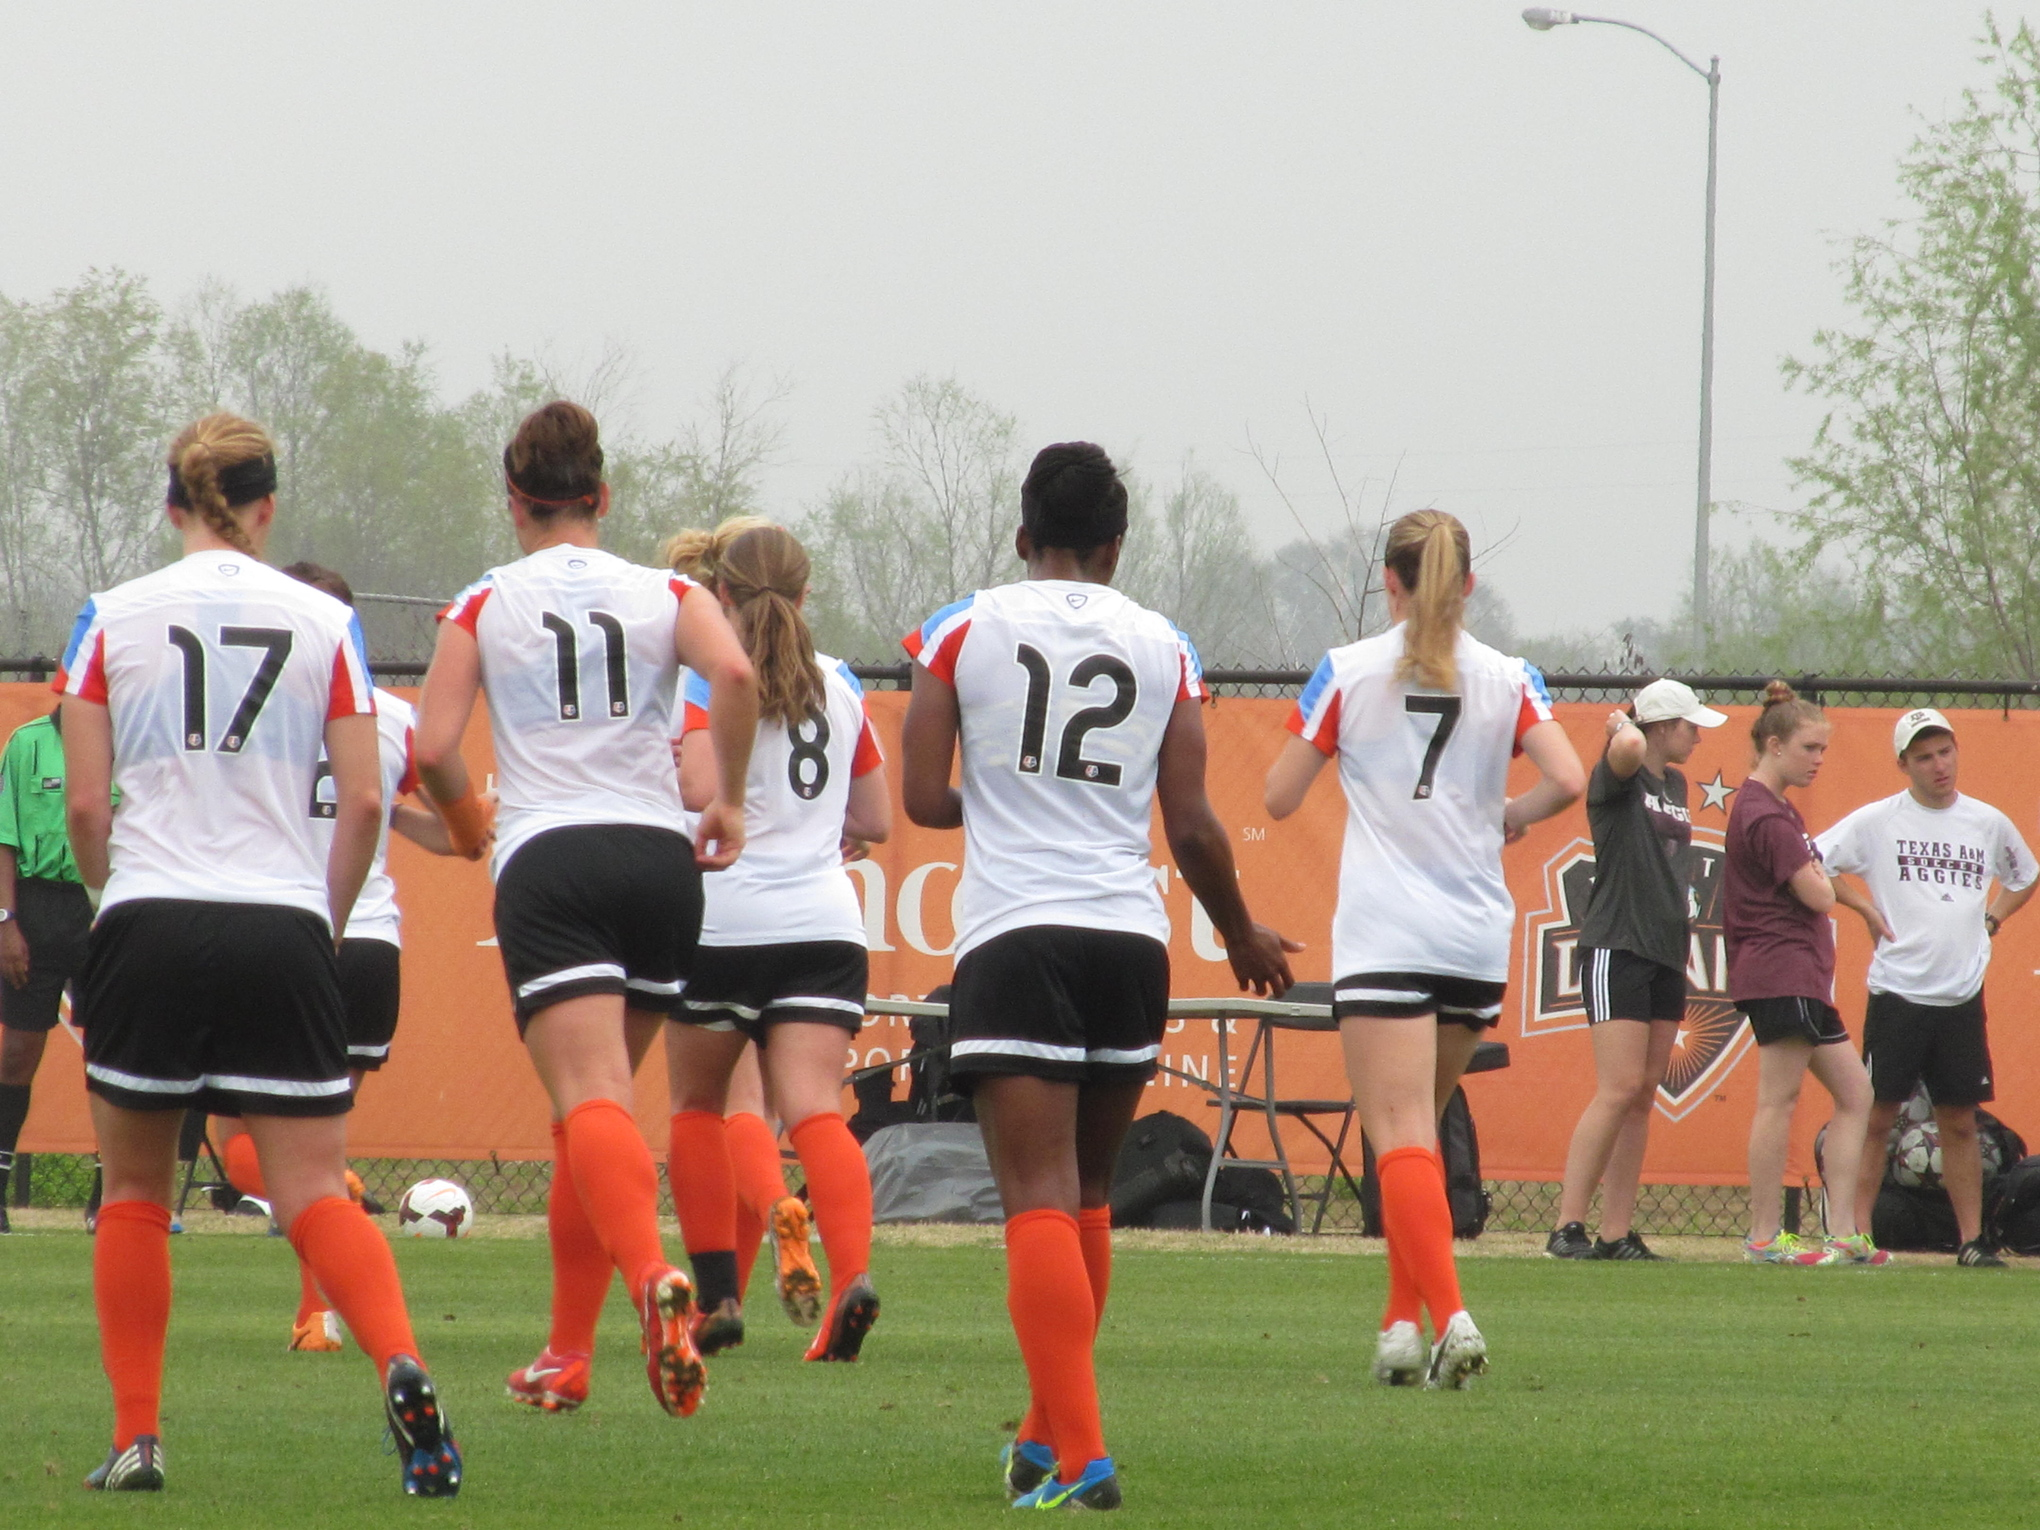 Houston Dash players walk off the pitch during a preseason match.